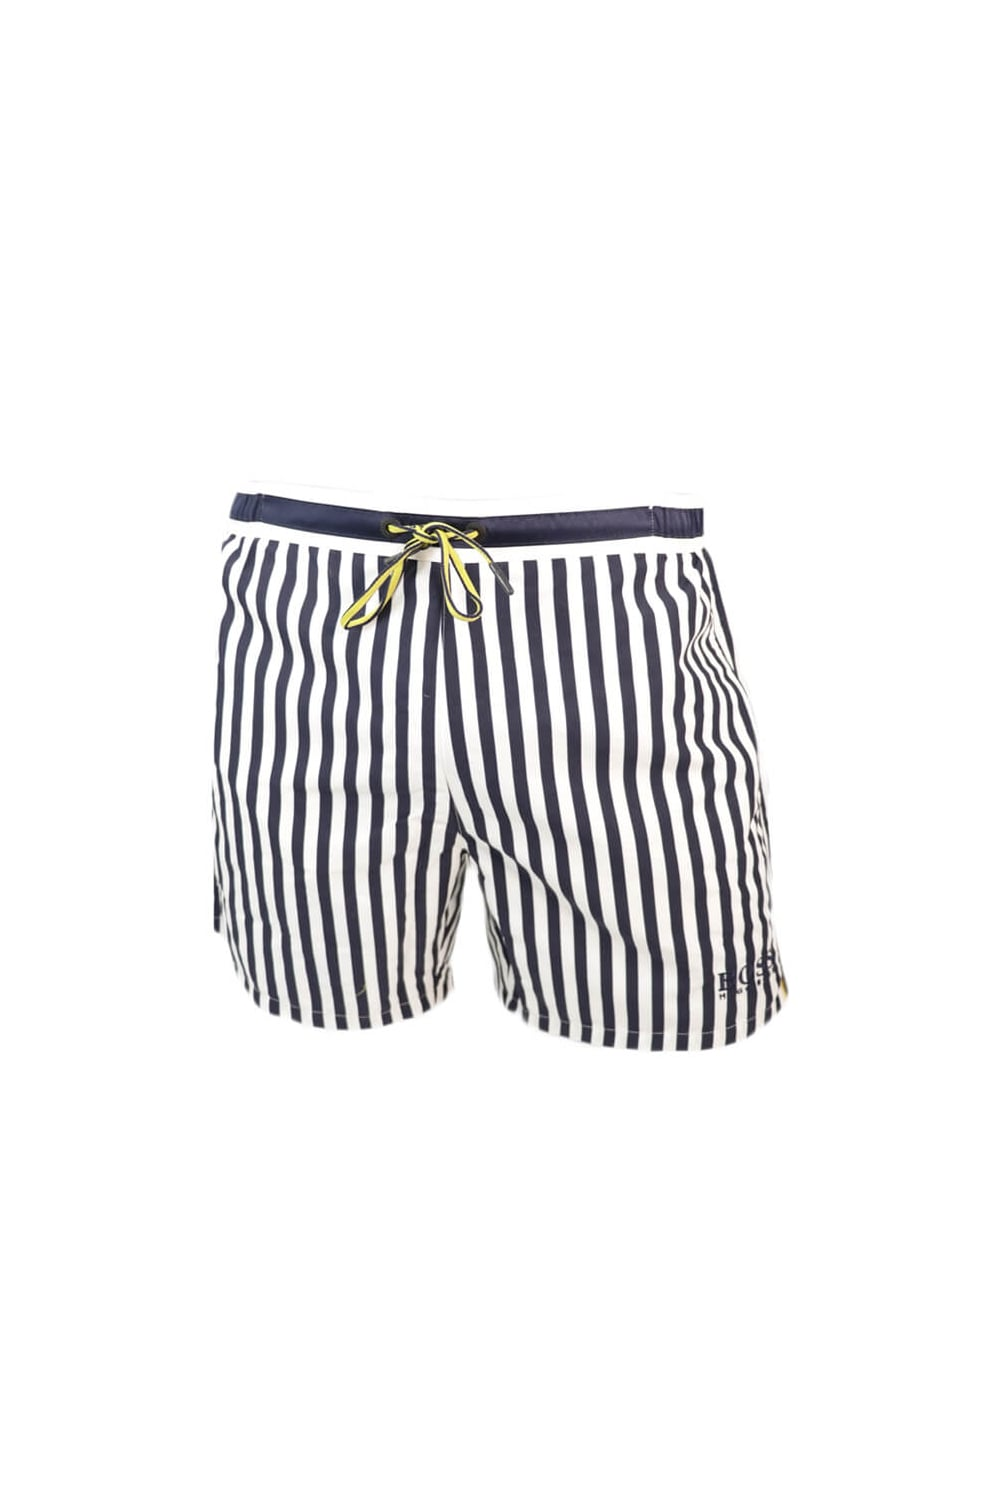 a73a07f6fcfe9 Hugo Boss Green Bannerfish Swim Shorts Navy Stripe - Clothing from ...